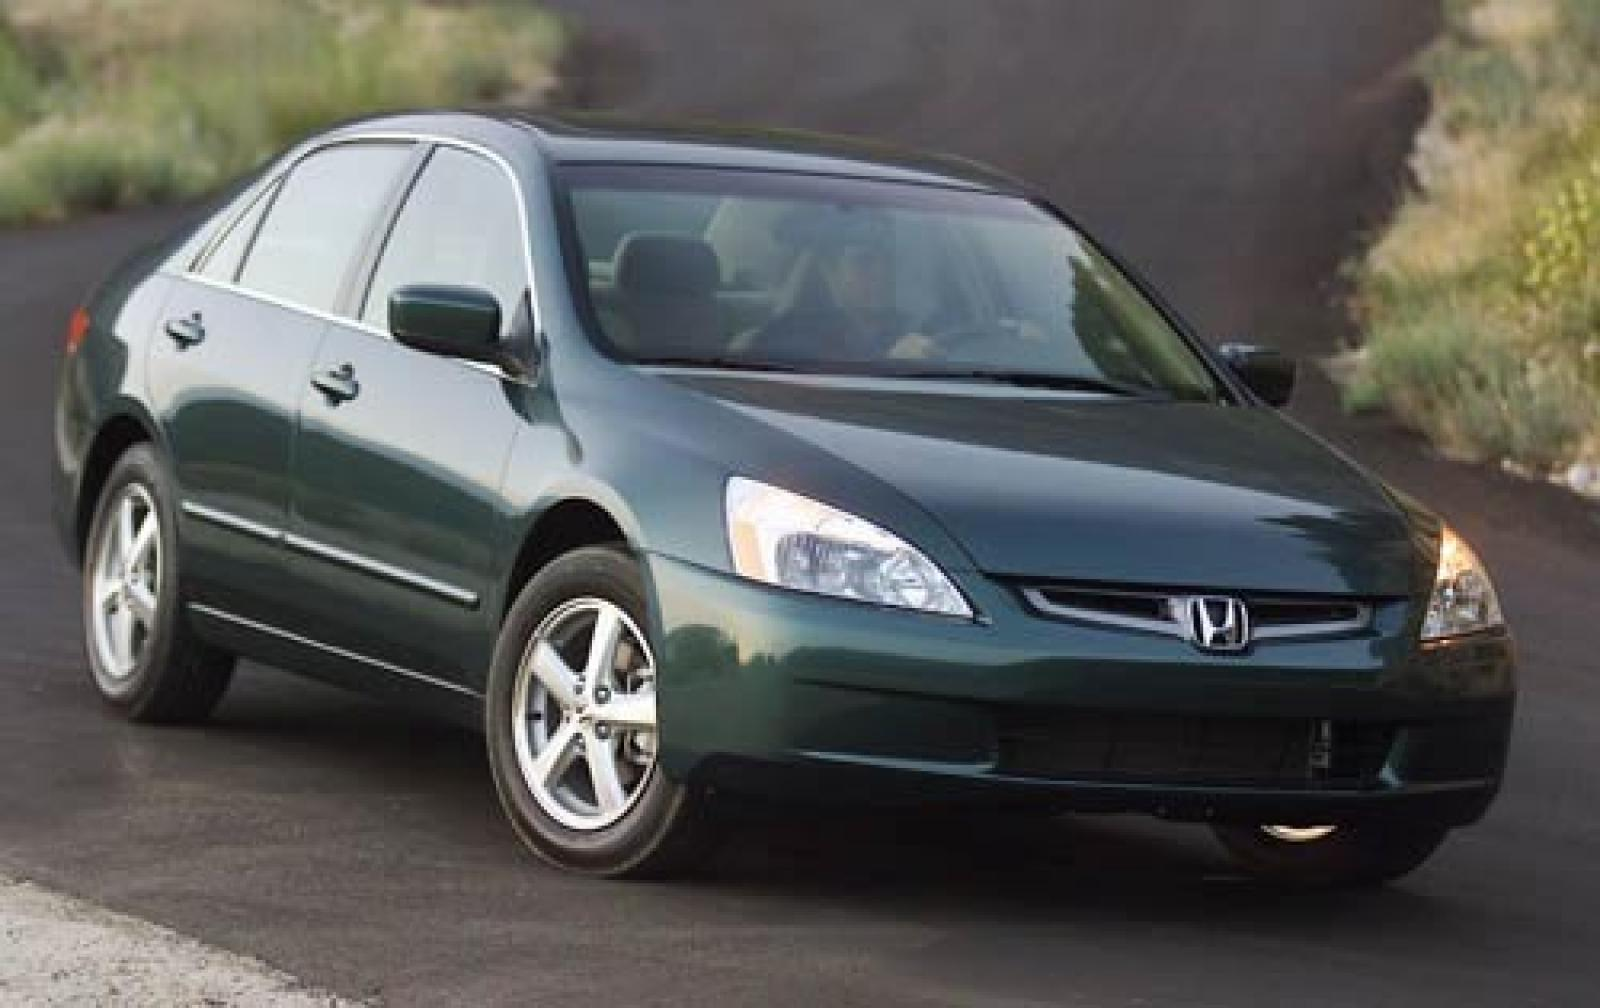 2005 honda accord information and photos zombiedrive for 2003 honda accord ex sedan